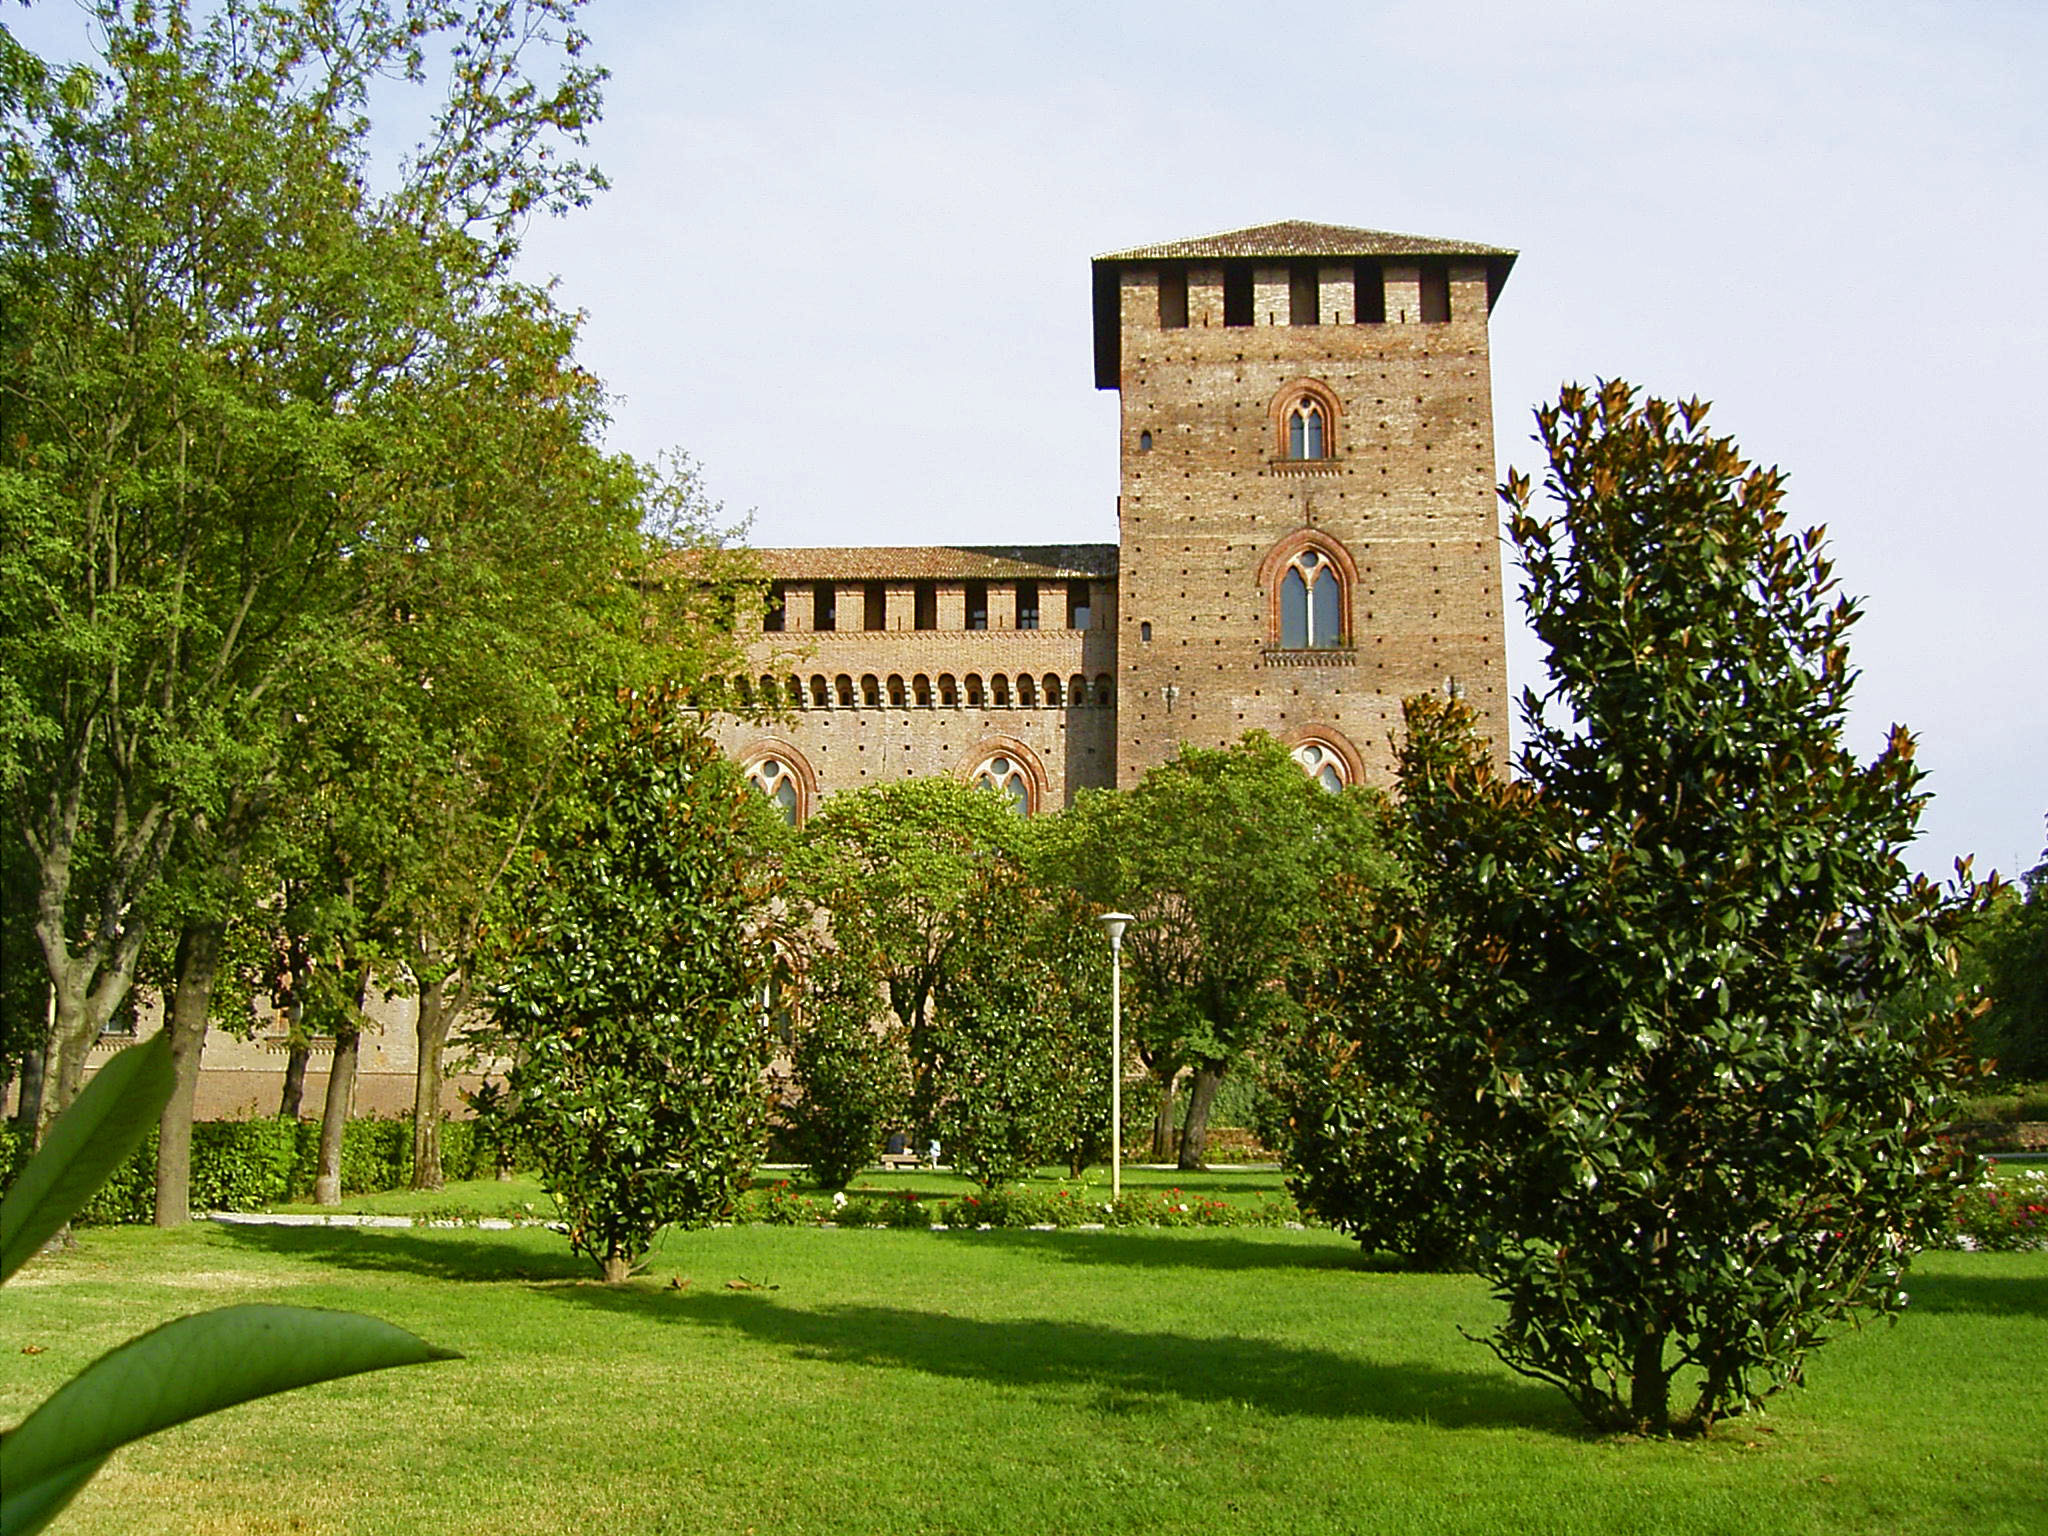 File:Castello Visconteo (Pavia).JPG - Wikimedia Commons